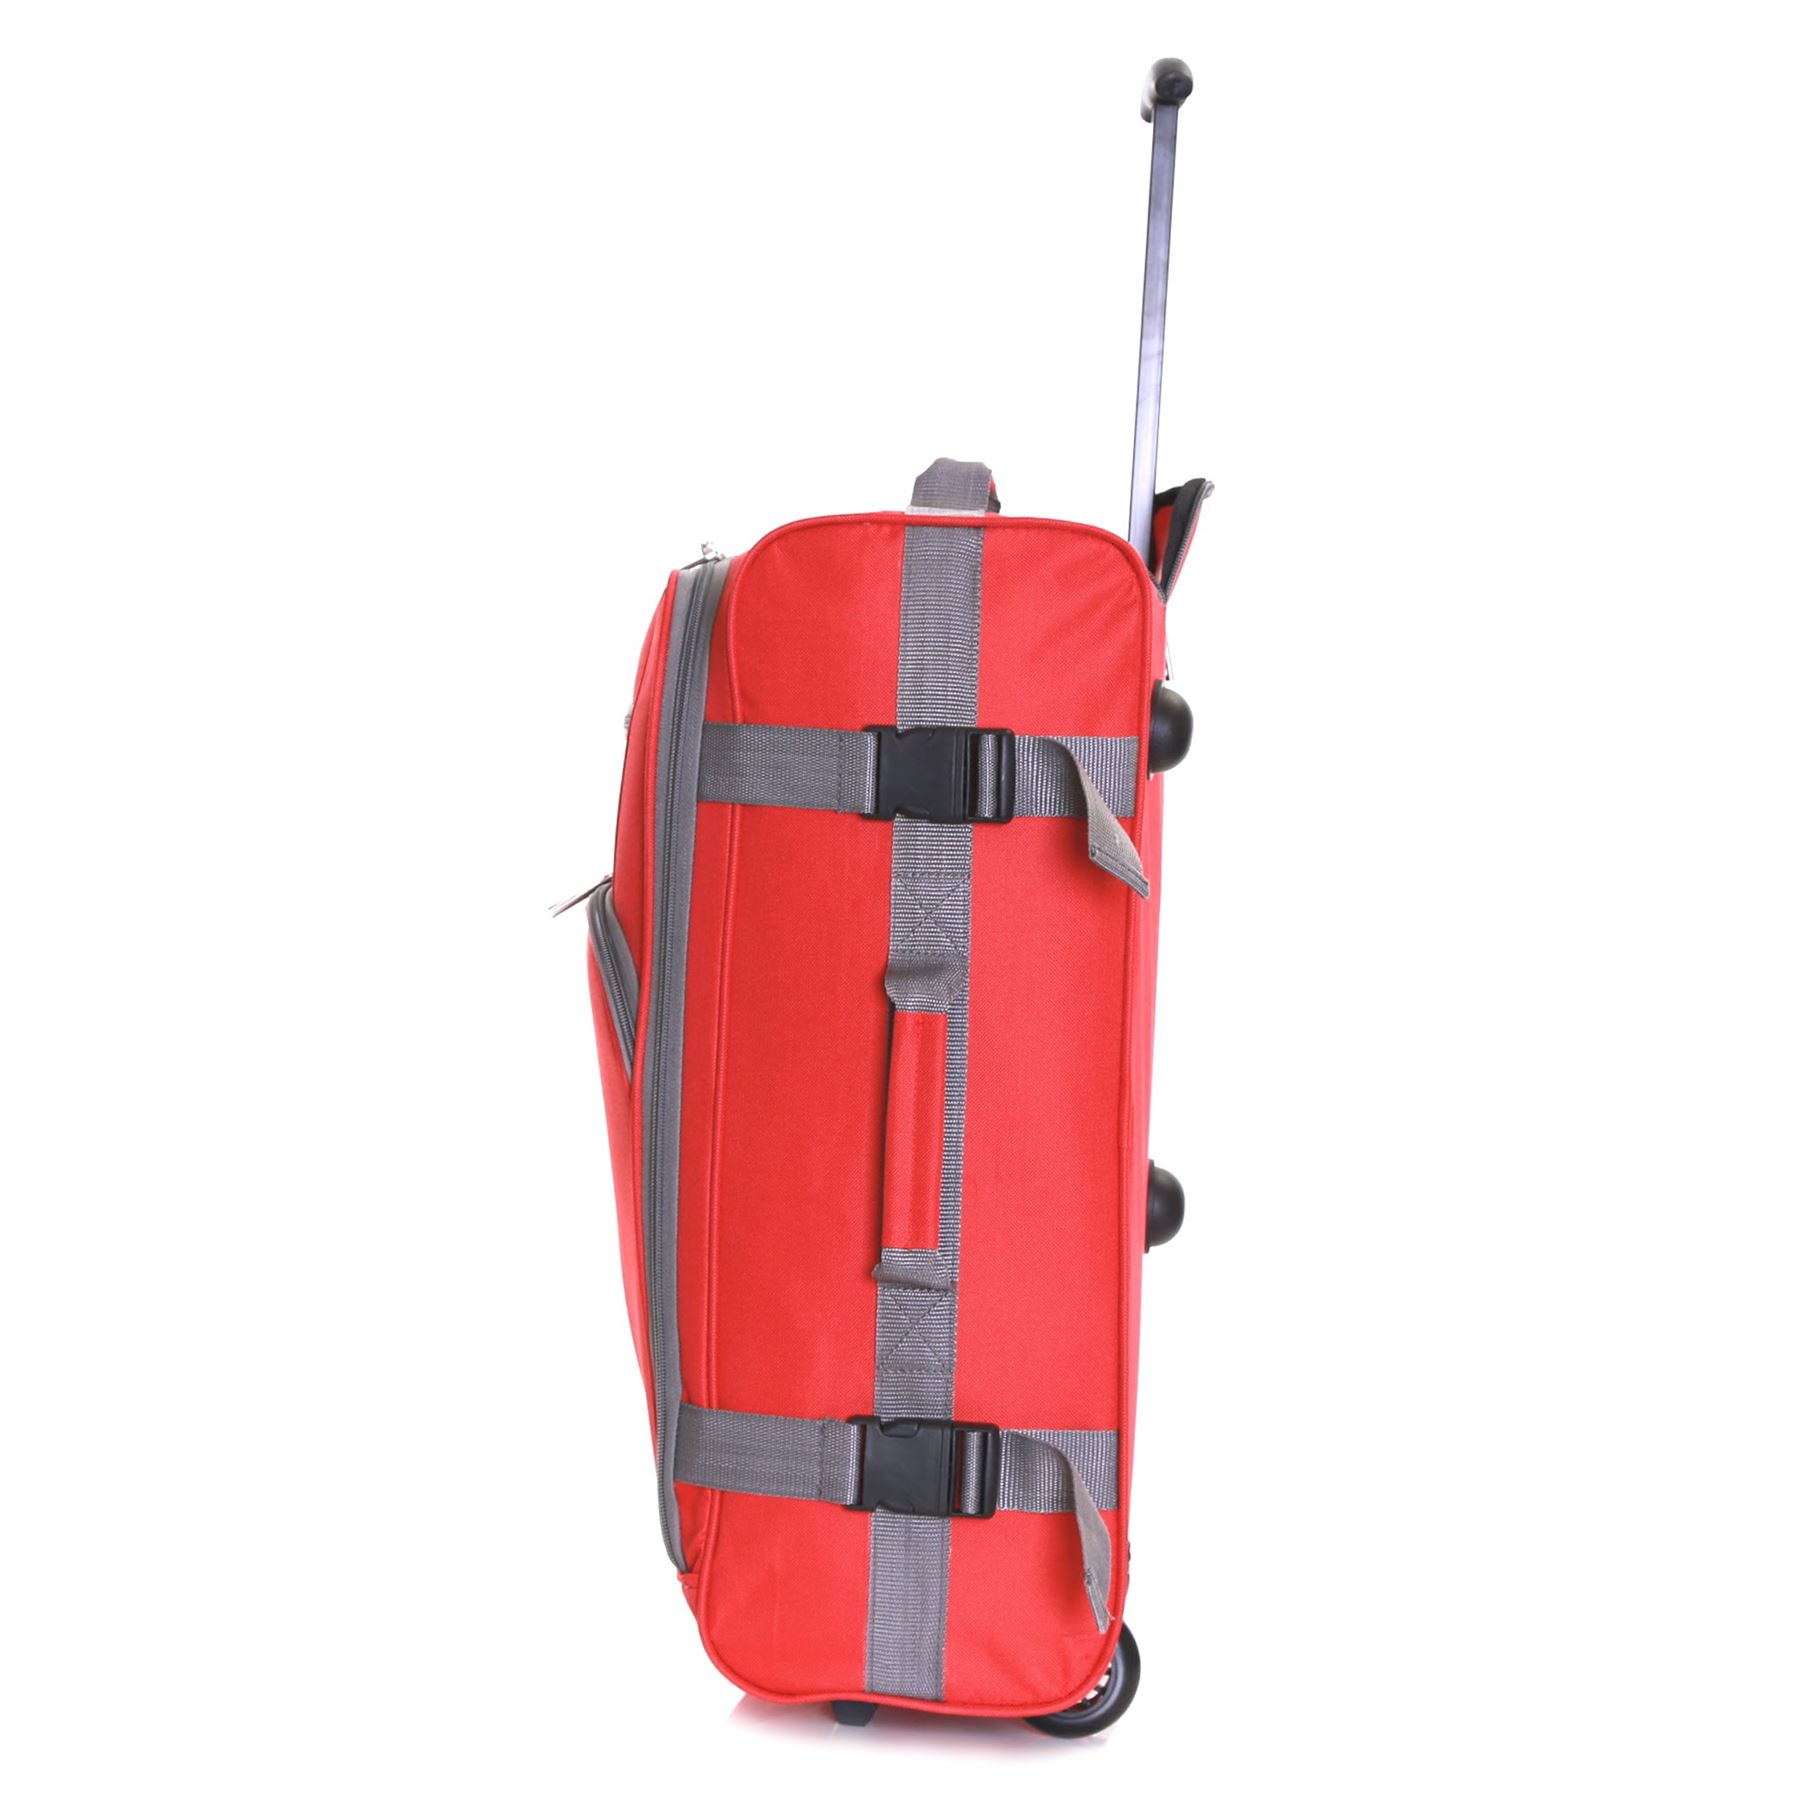 Ryanair-Easyjet-Set-of-2-Cabin-Approved-Hand-Trolley-Suitcases-Luggage-Case-Bags thumbnail 19